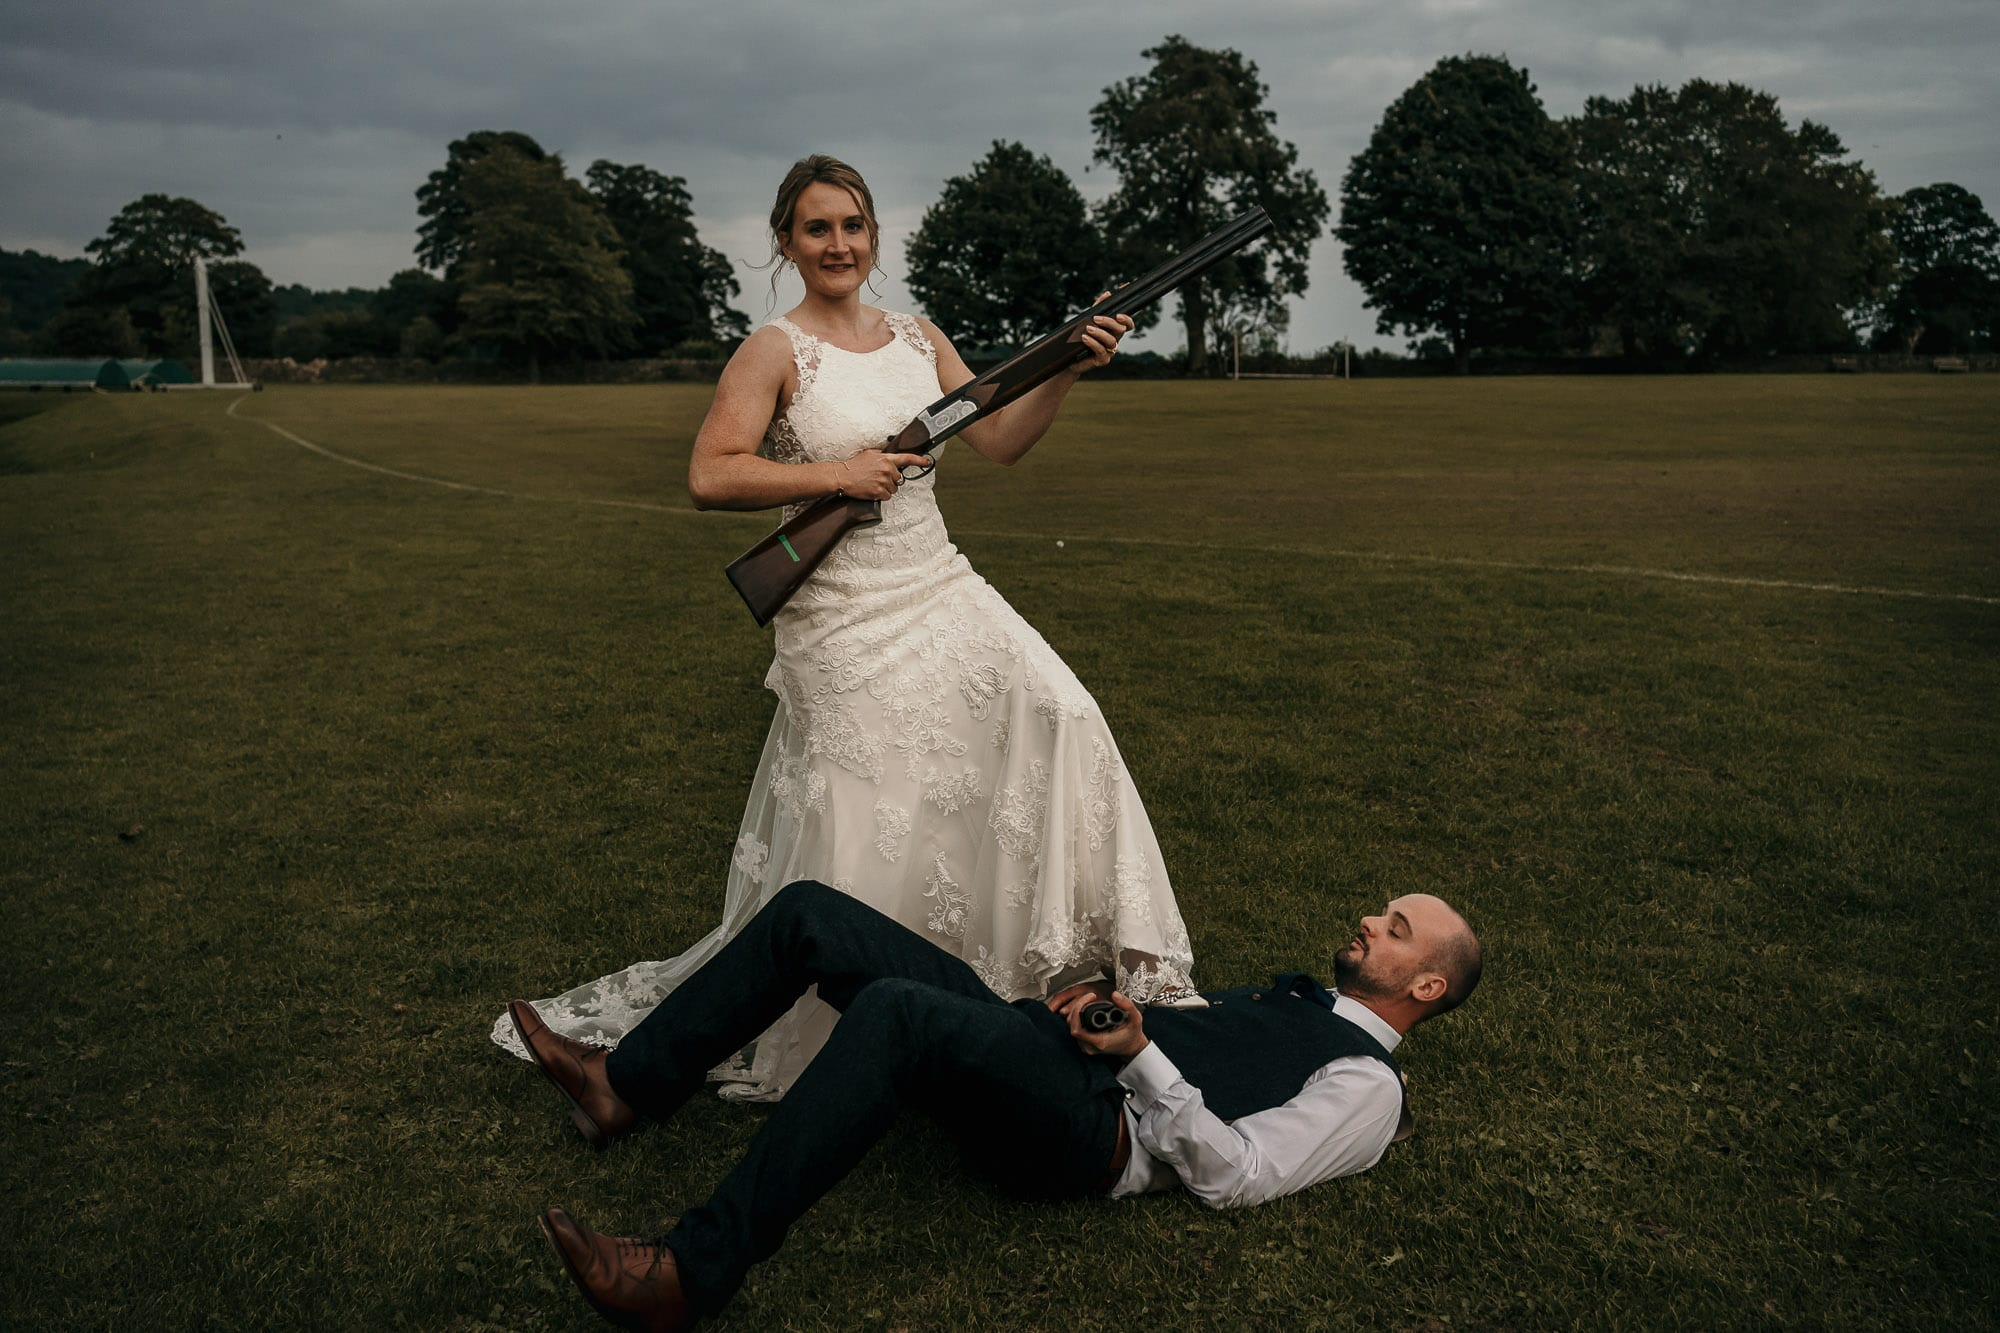 Bride and groom with gun on wedding day